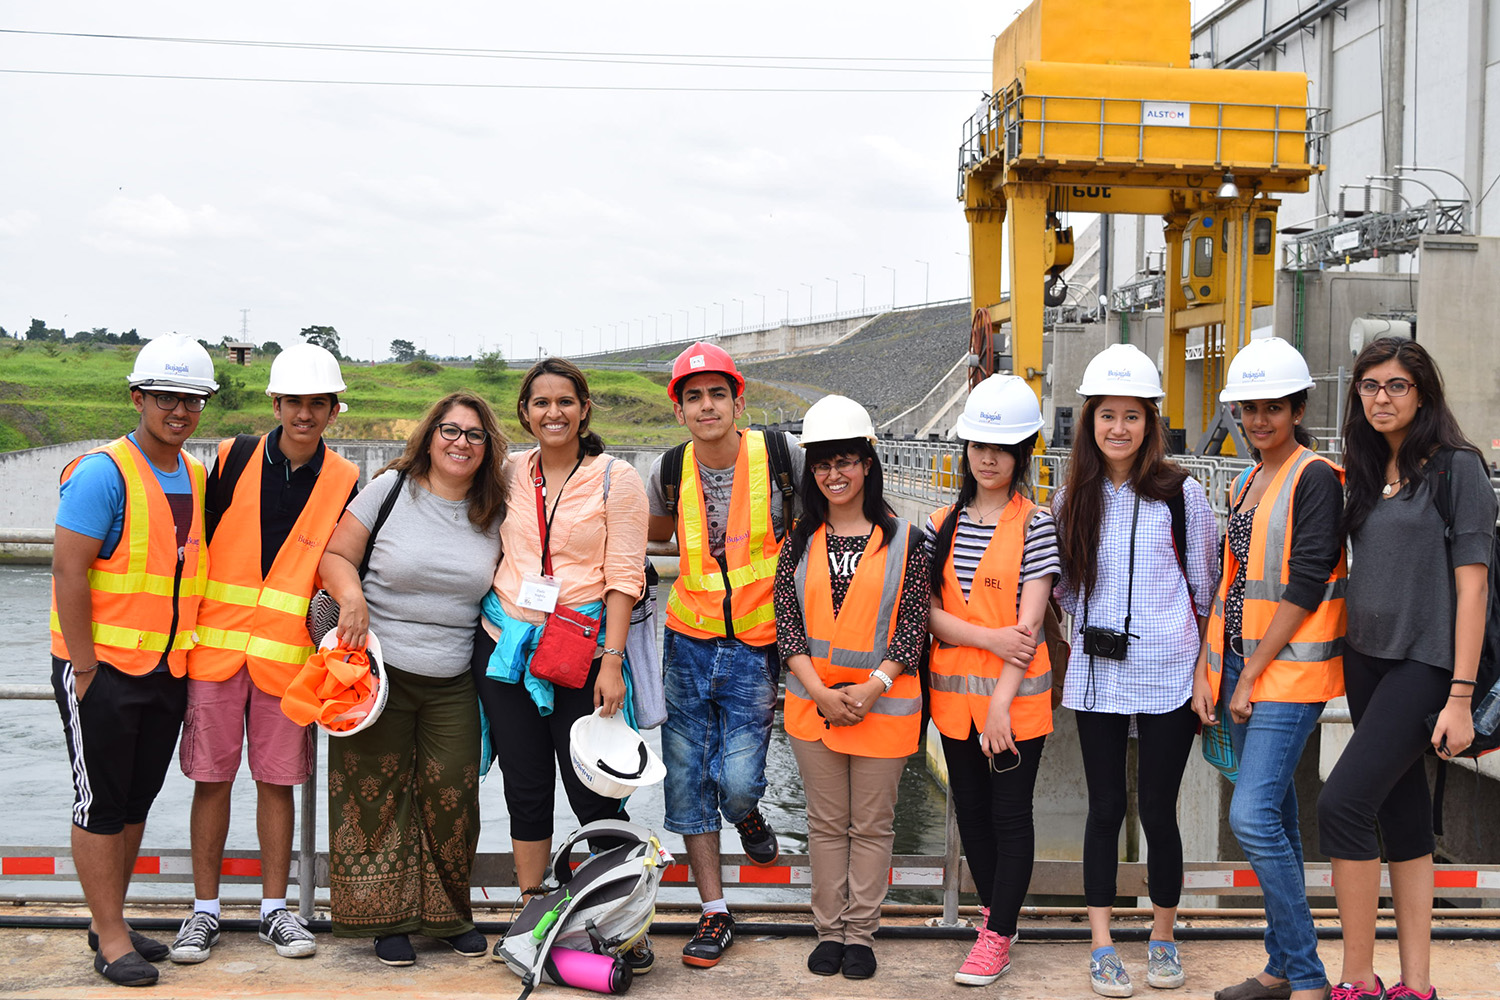 Campers visit the Bujagali Hydroelectric Power Station in Jinja, an AKDN project that generates 250 megawatts and provides significant economic and social benefits to Ugandans. Global Encounters / Nashila Somani Ladha